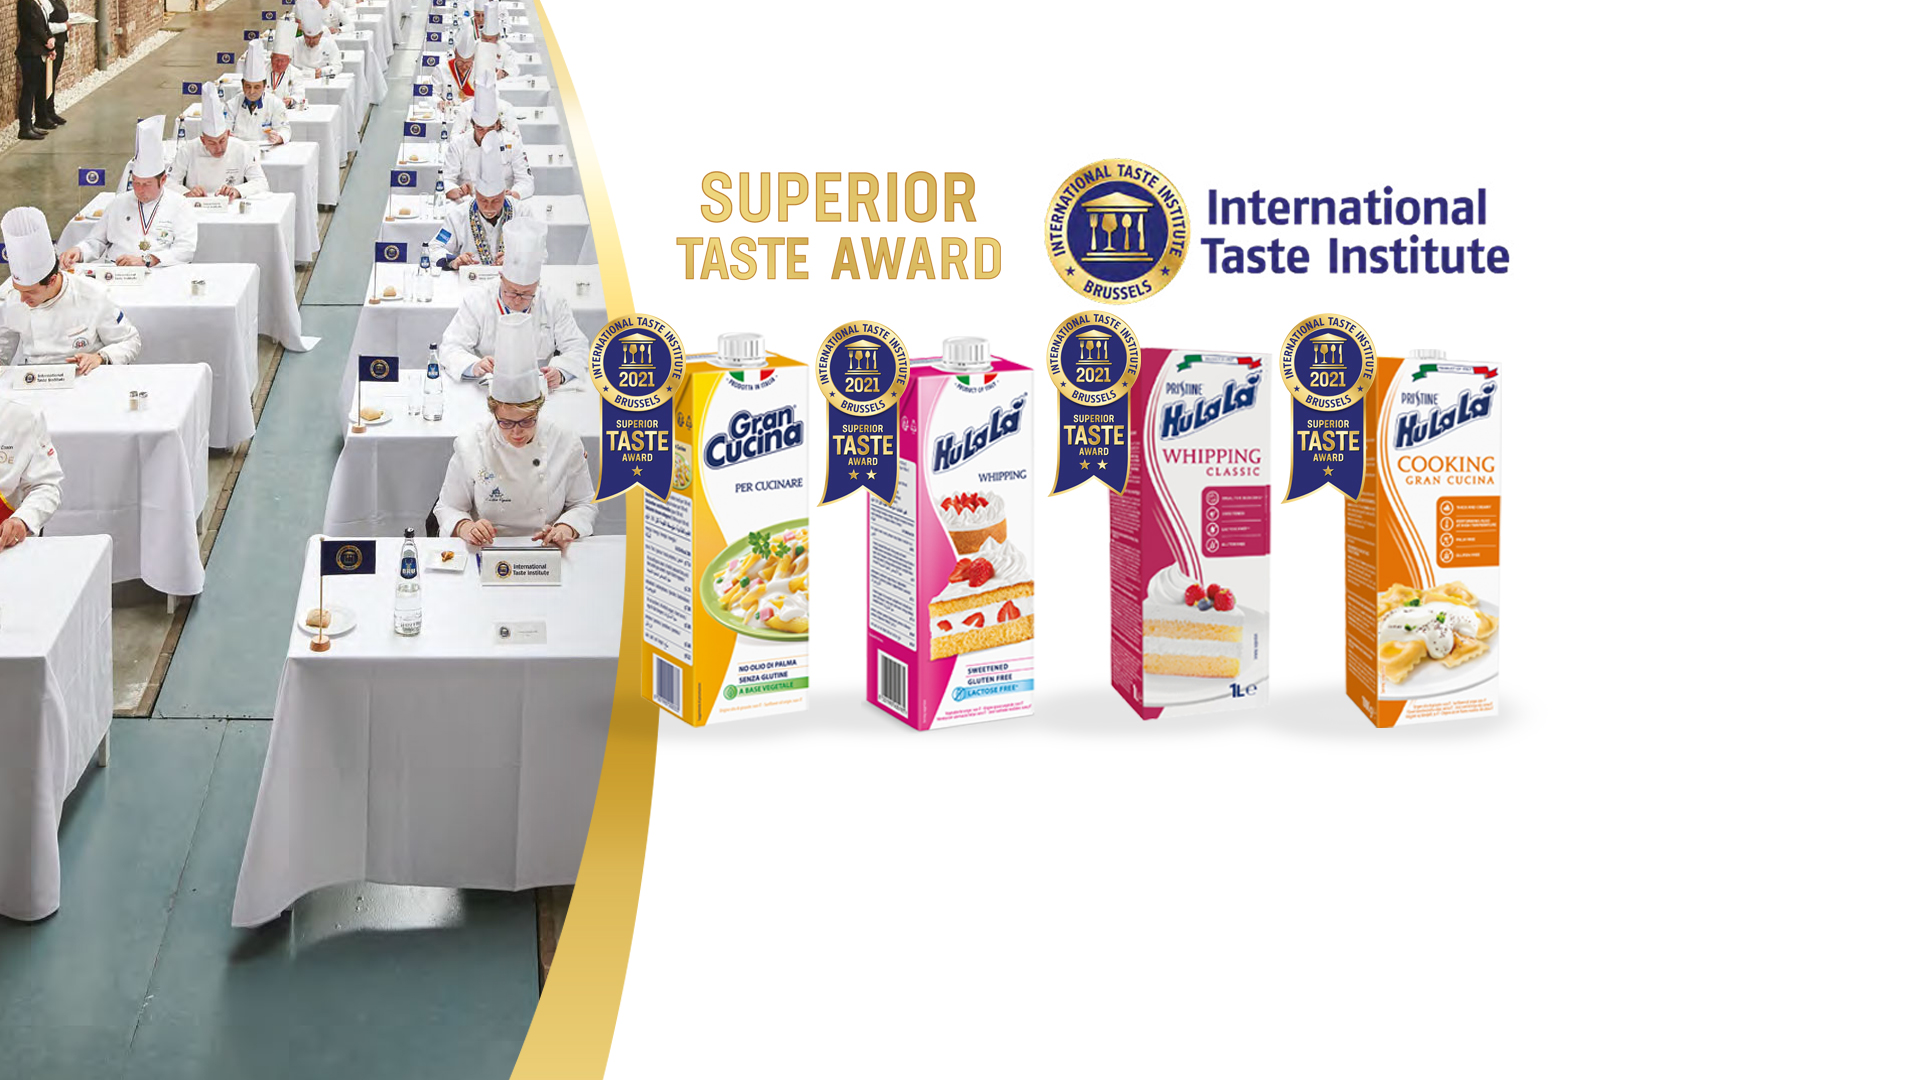 Gran Cucina and Hulalà creams awarded by International Taste Institute